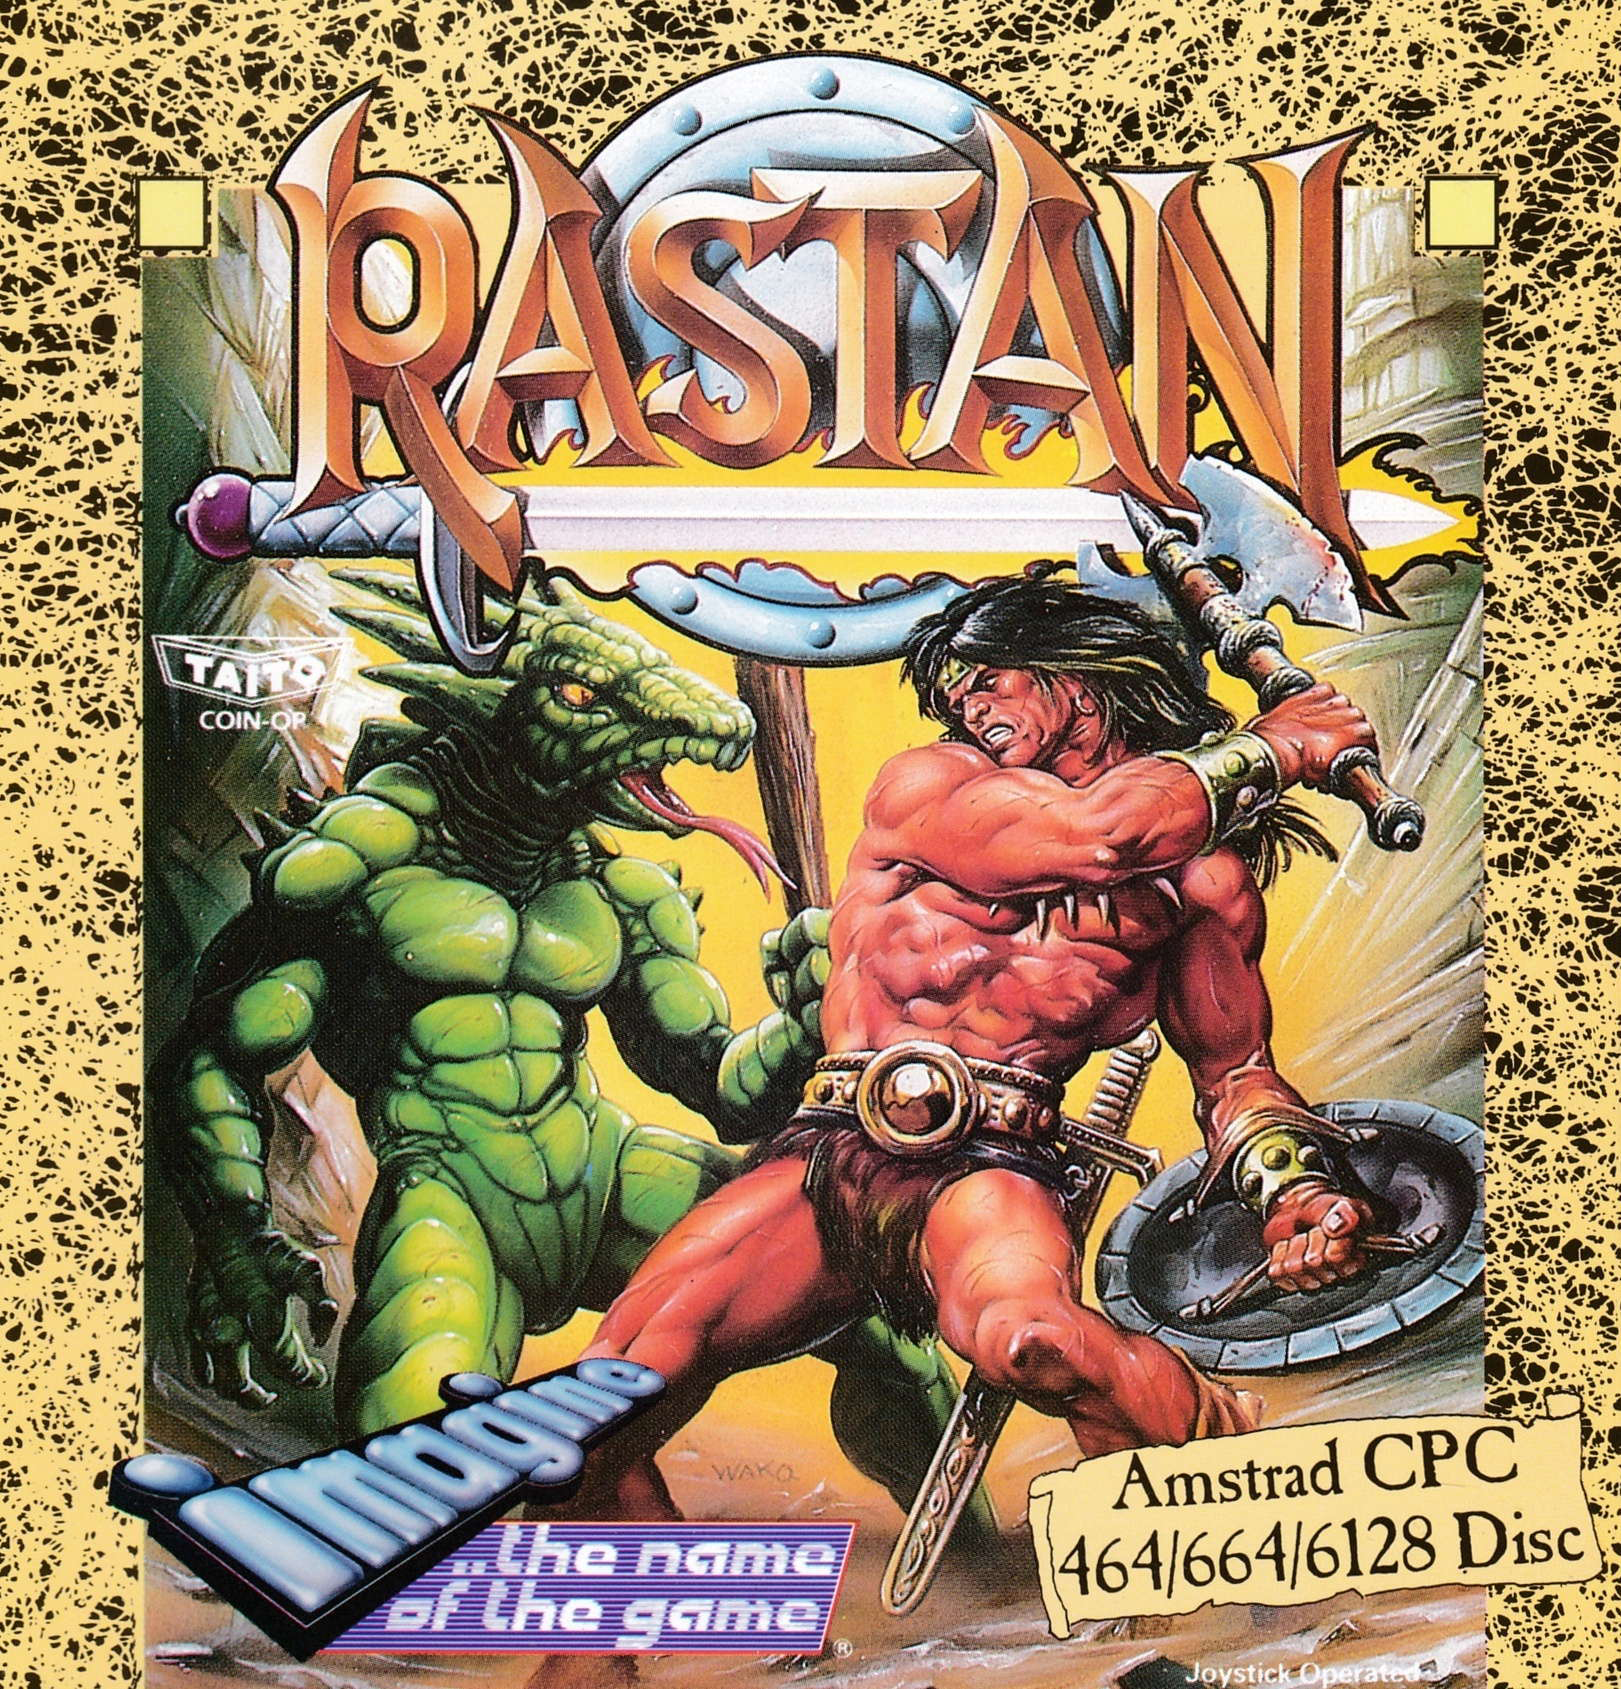 cover of the Amstrad CPC game Rastan  by GameBase CPC